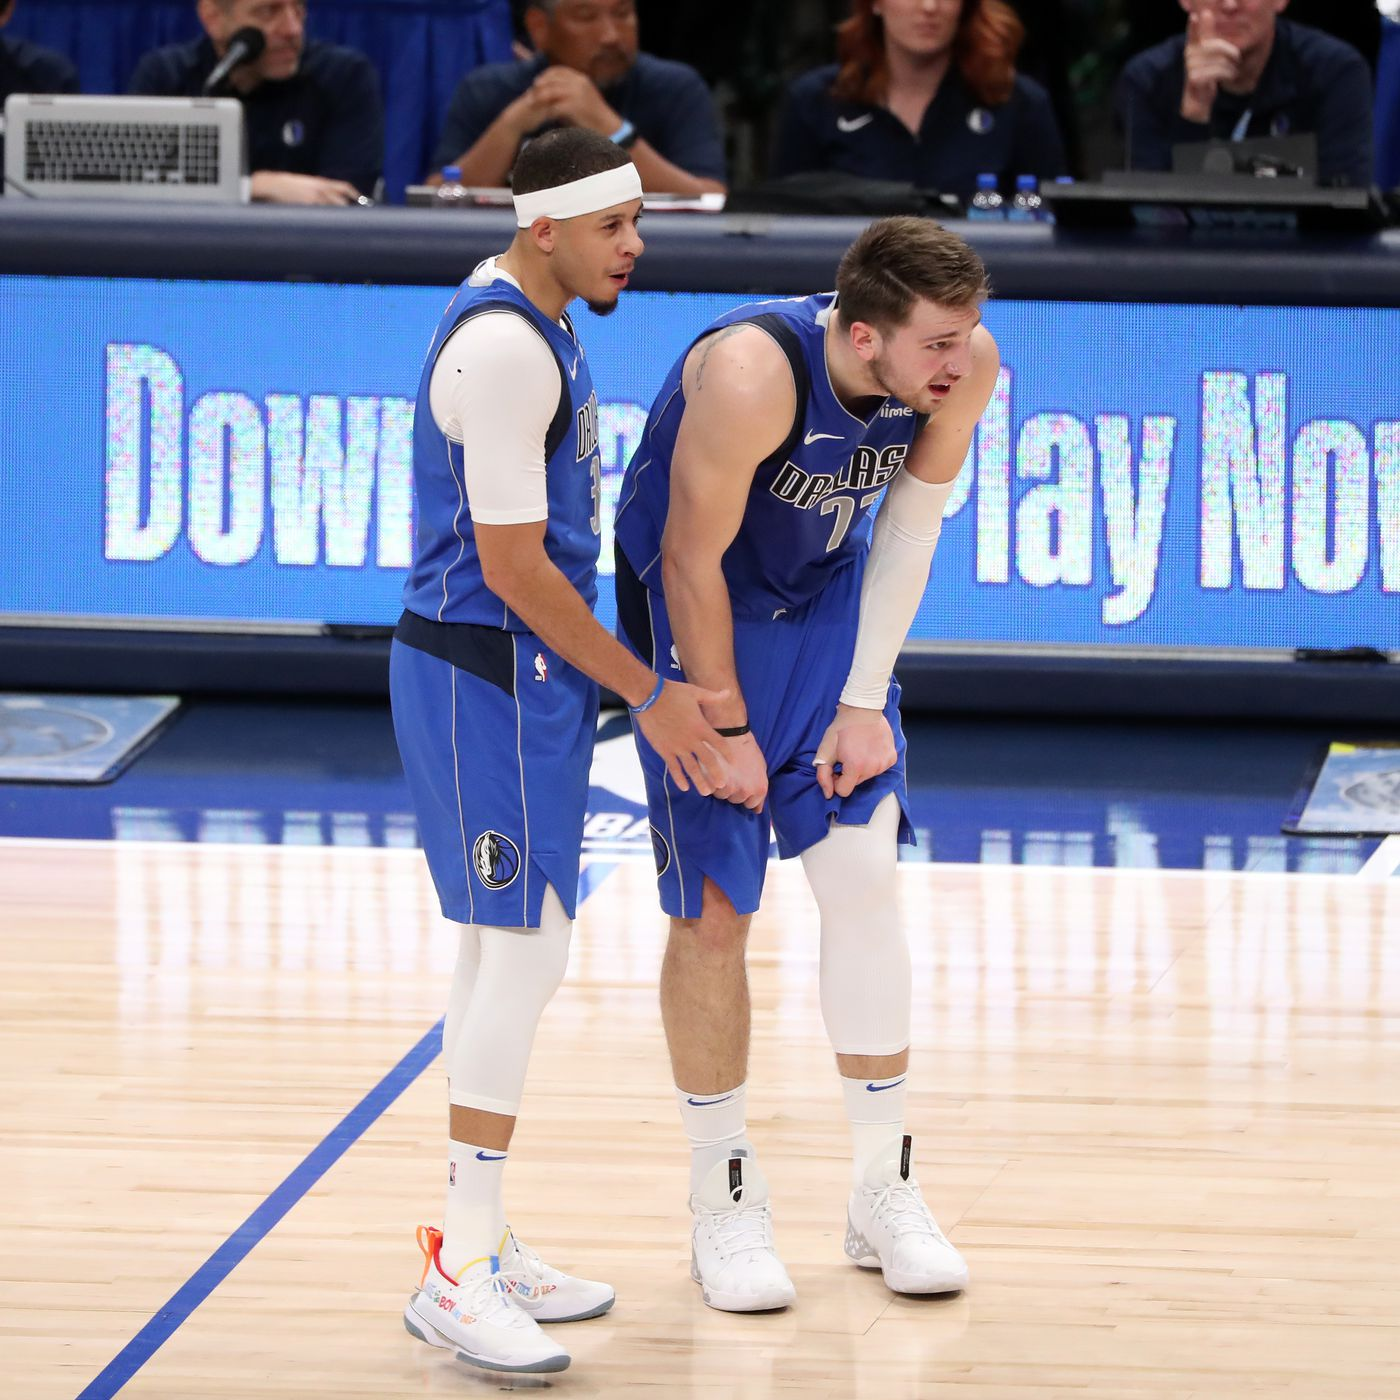 Rare Air Luka Doncic Is Setting A Standard That Will Be Hard To Match Duke Basketball Report